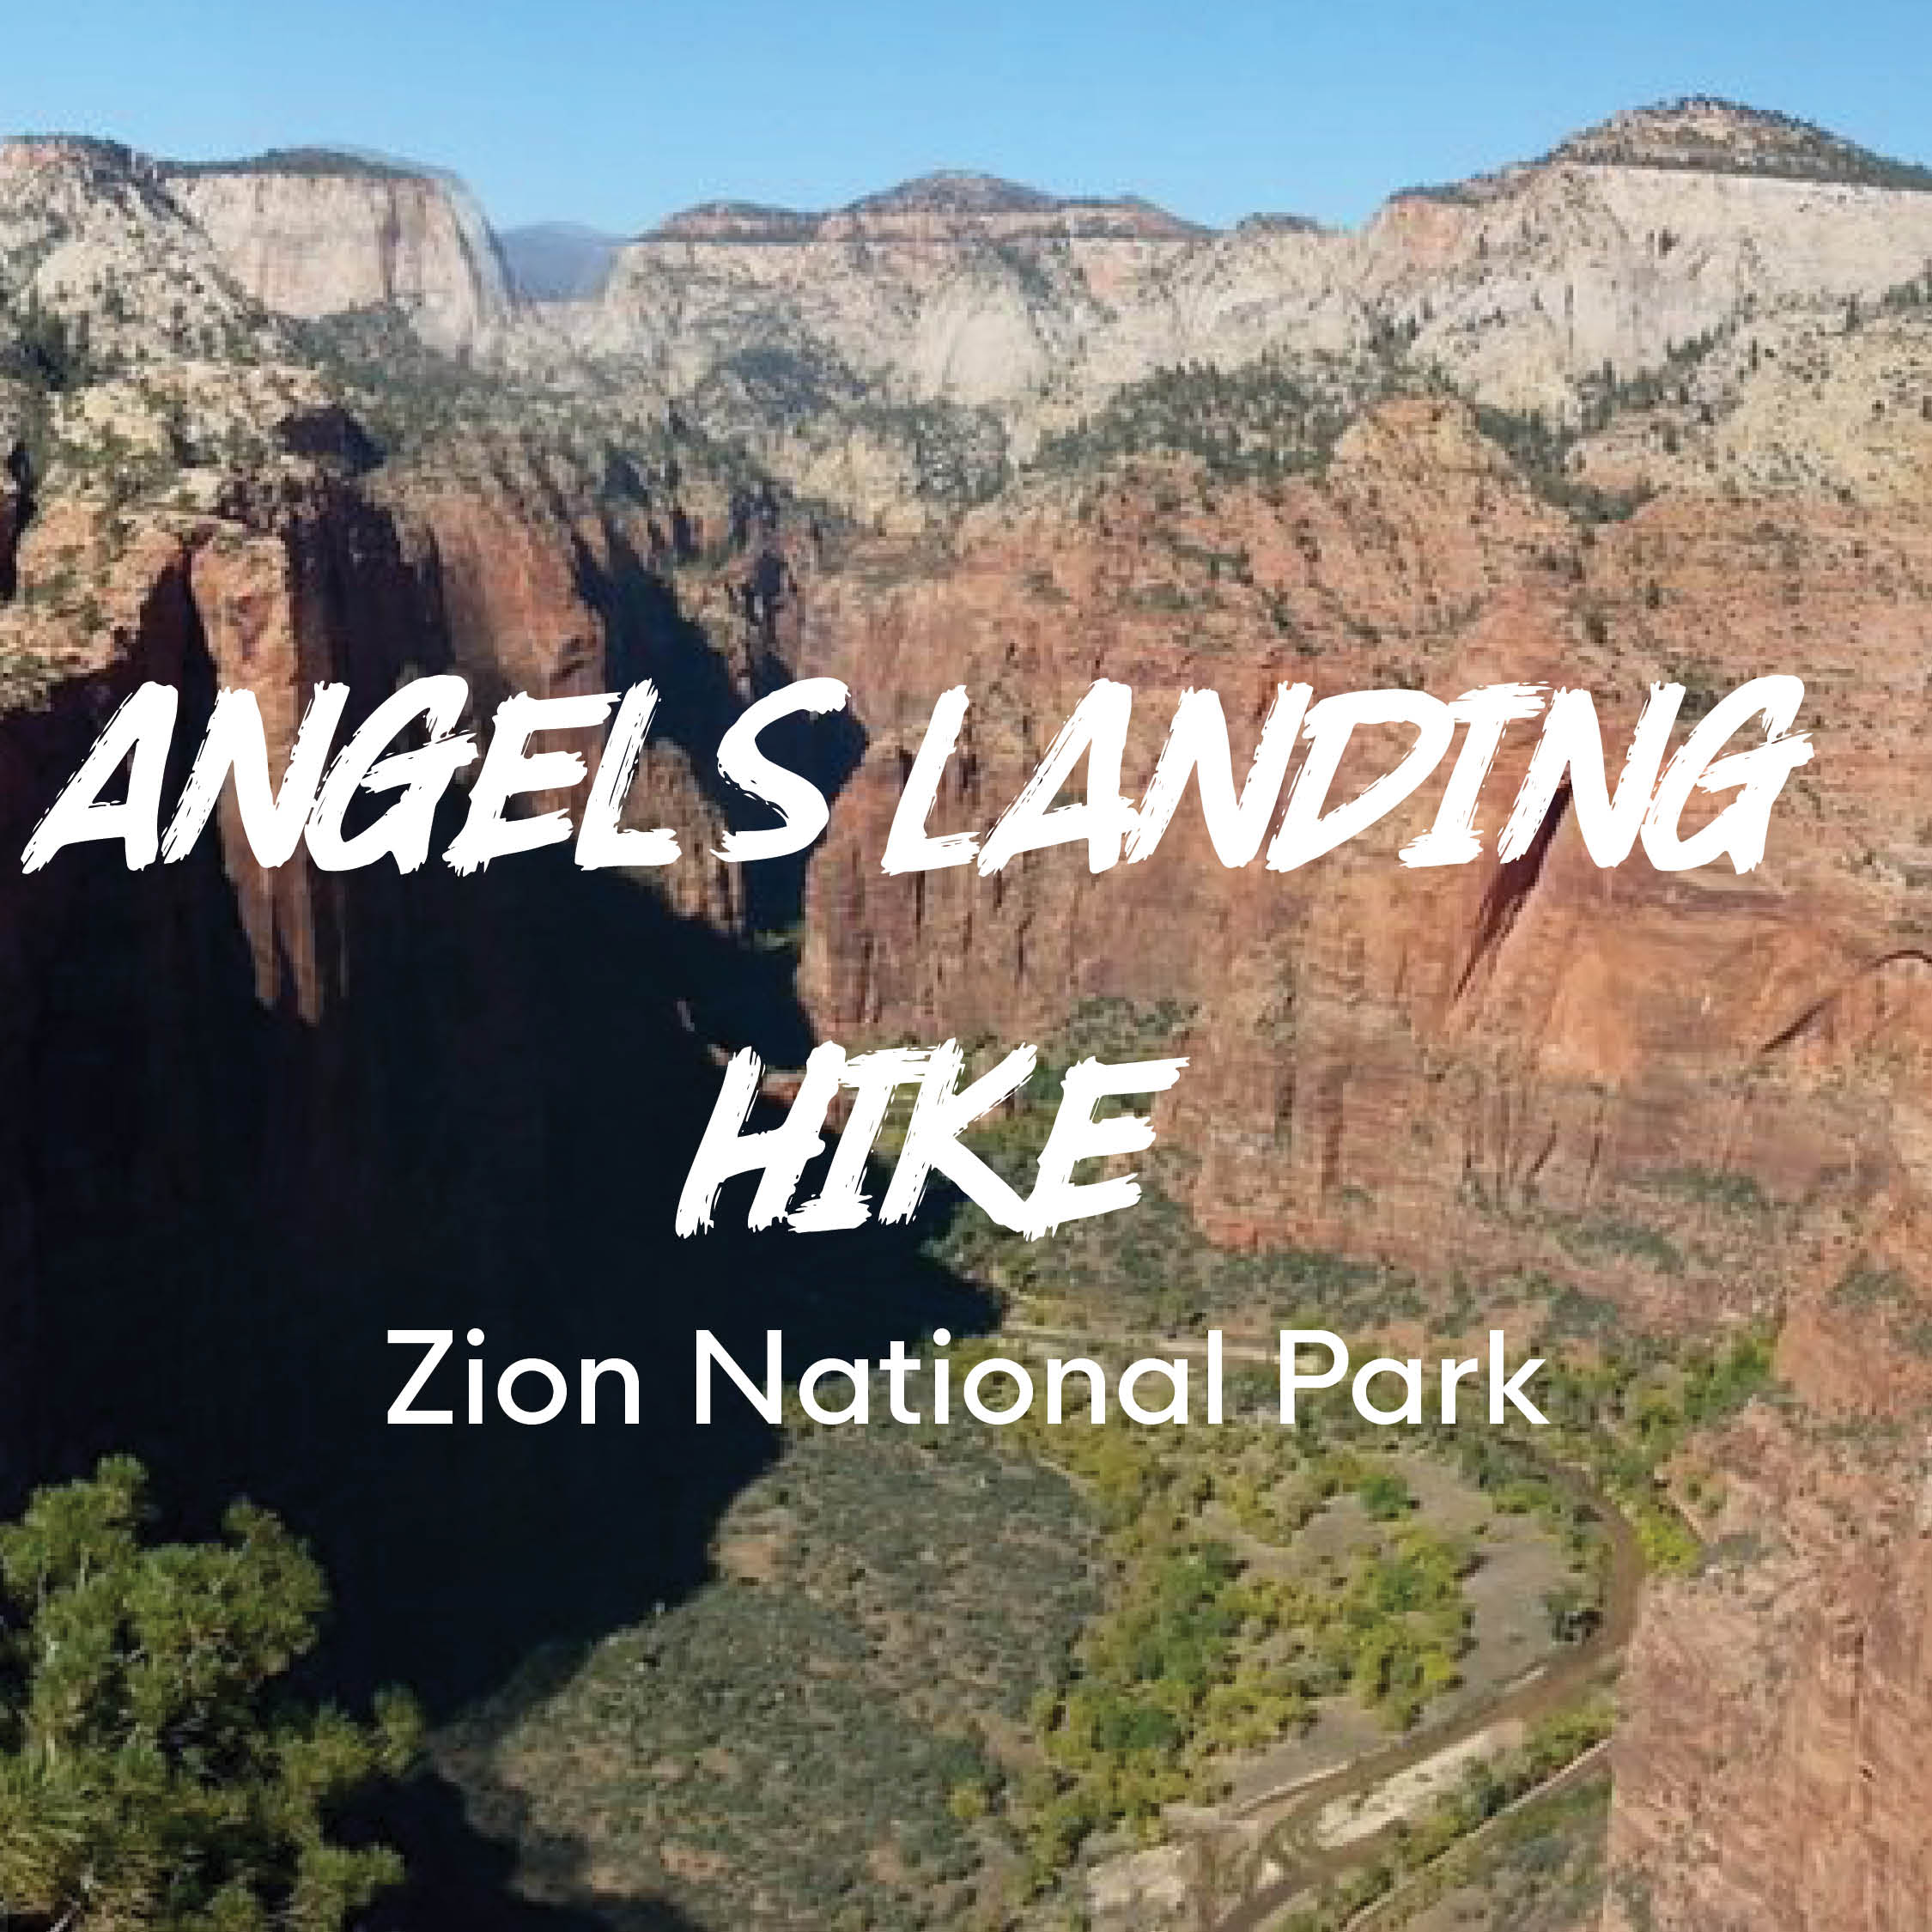 Angels Landing Hike.jpg